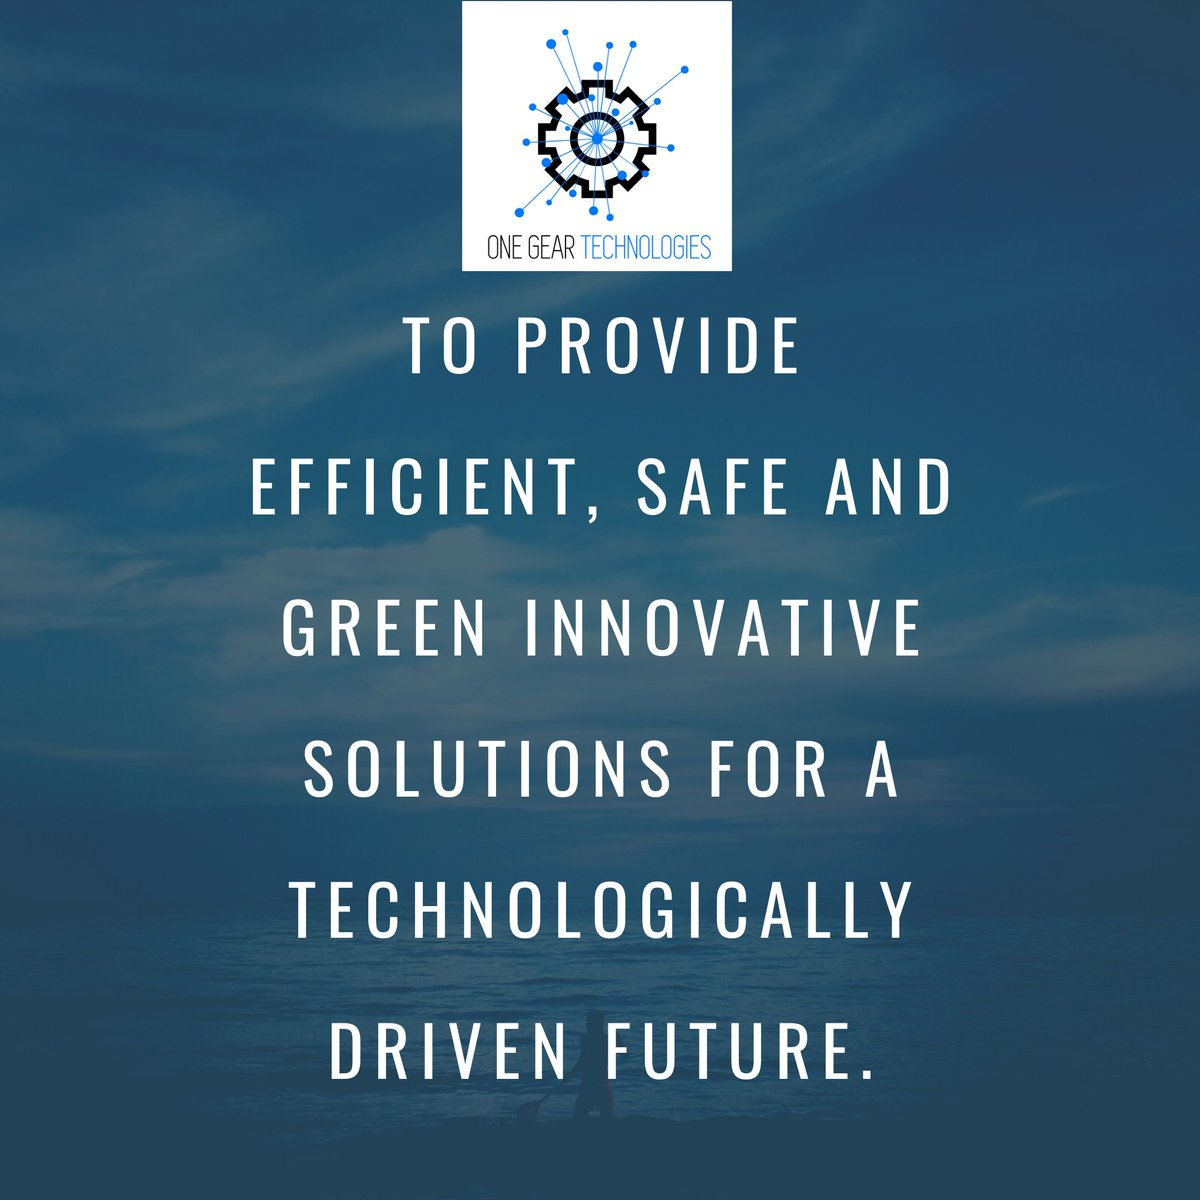 Mission of One Gear Technologies ⚙️  #ogt #future #goals #automobile #businessstartups #technology #ecofriendlyproducts #onegeartech https://t.co/a3K6MSlcNt